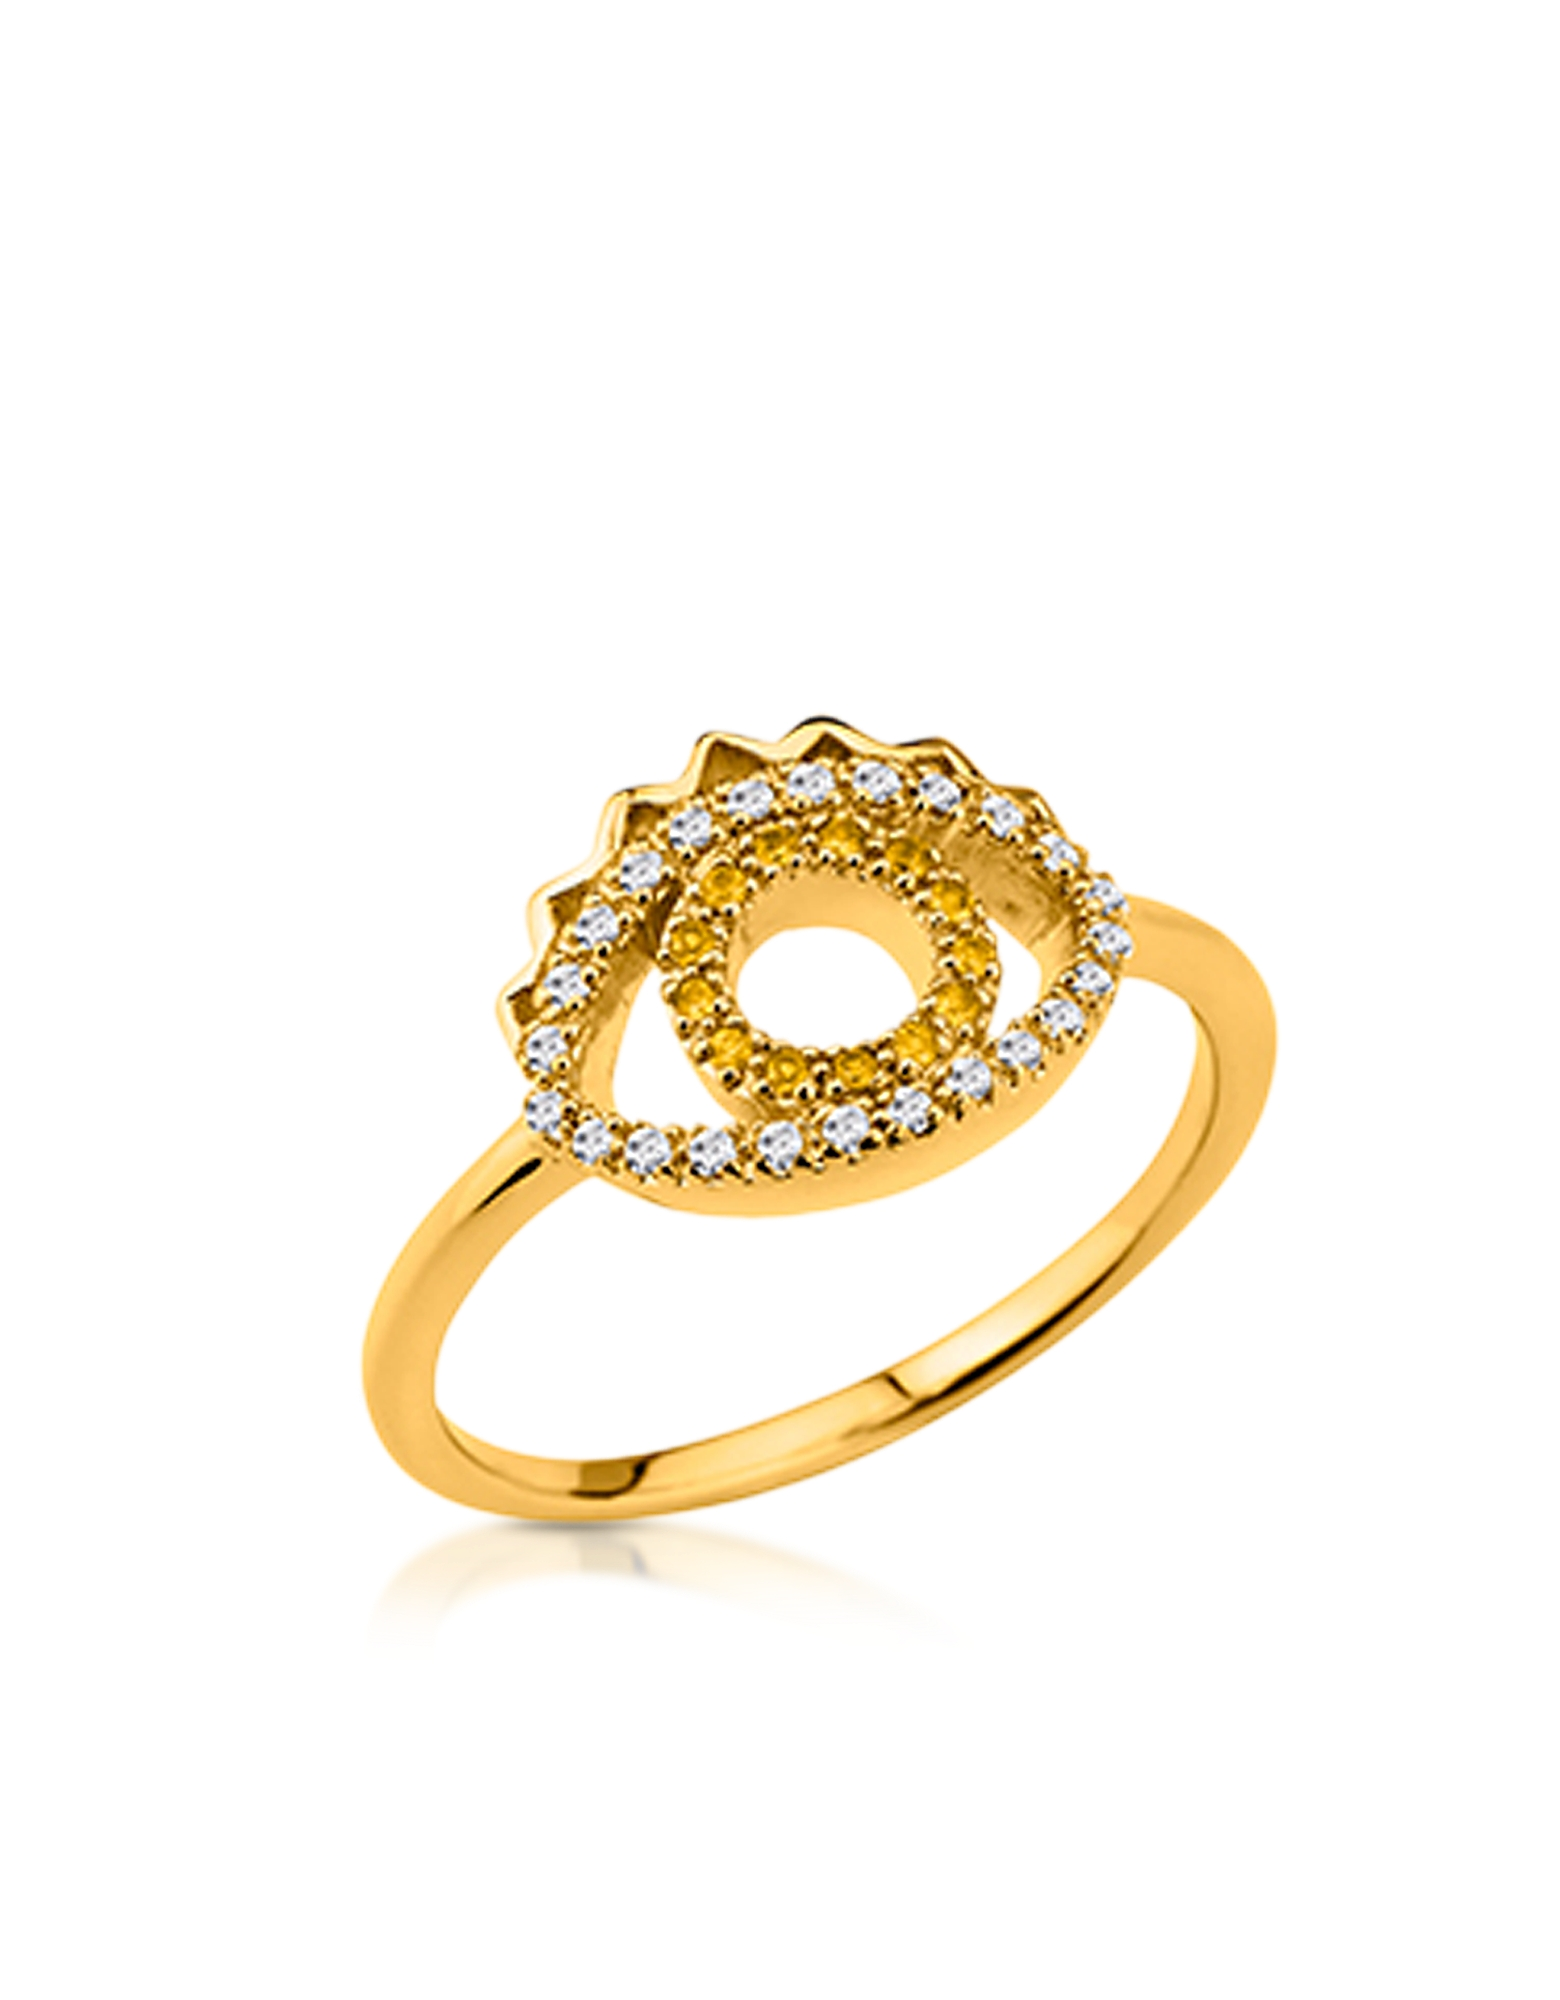 Kenzo Rings, Goldtone Mini Eye Ring w/Crystals